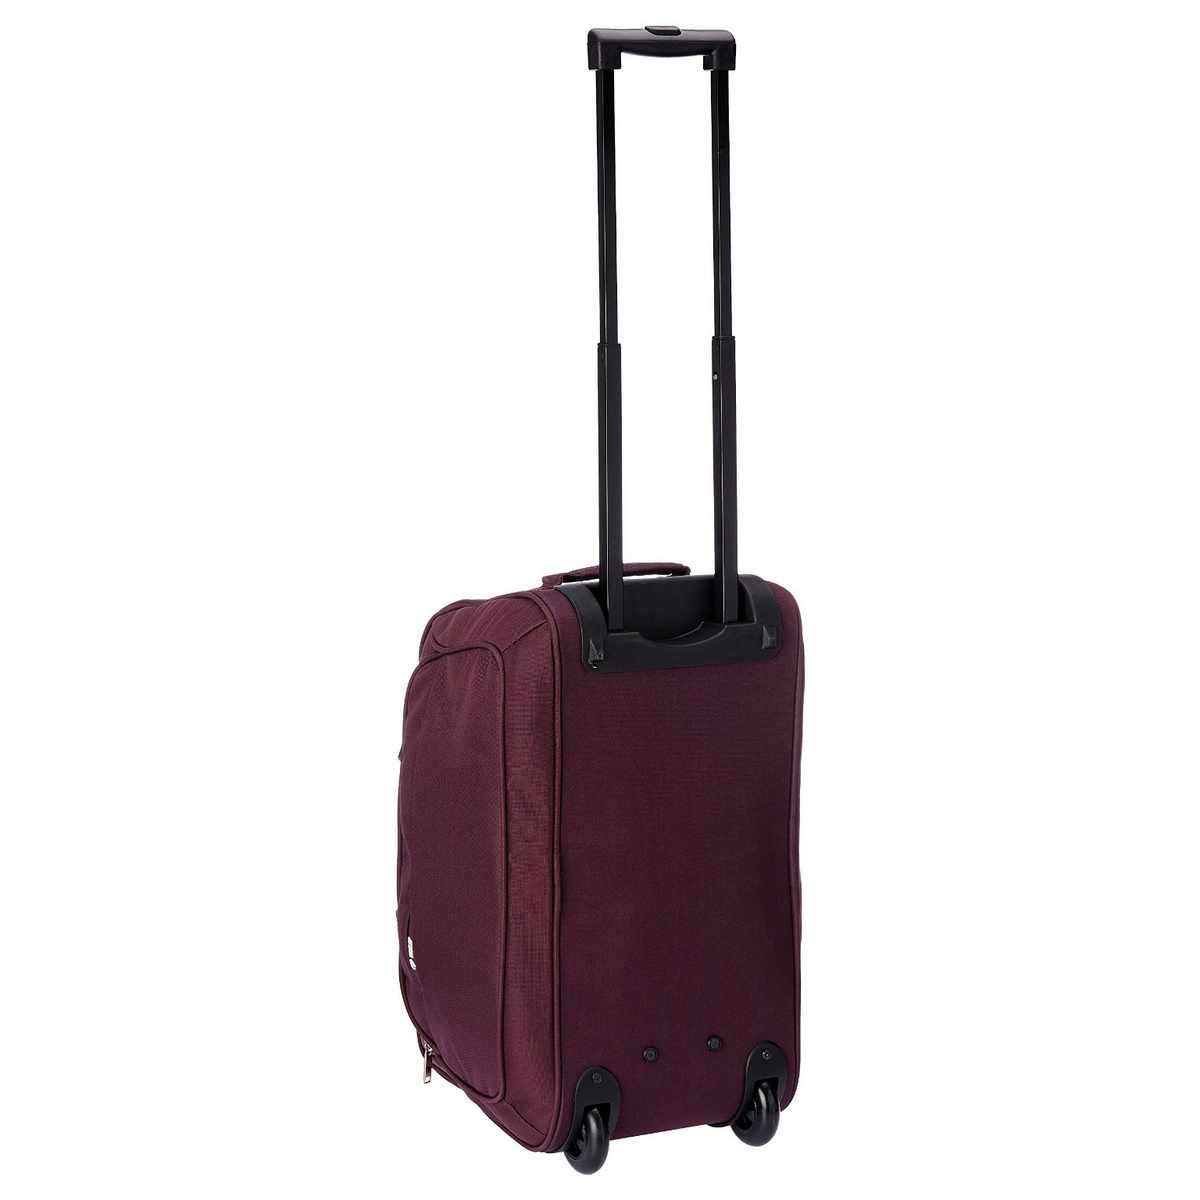 Vip Troy Dft 52cm Cabin Duffle Trolley Bag Sunrise Trading Co